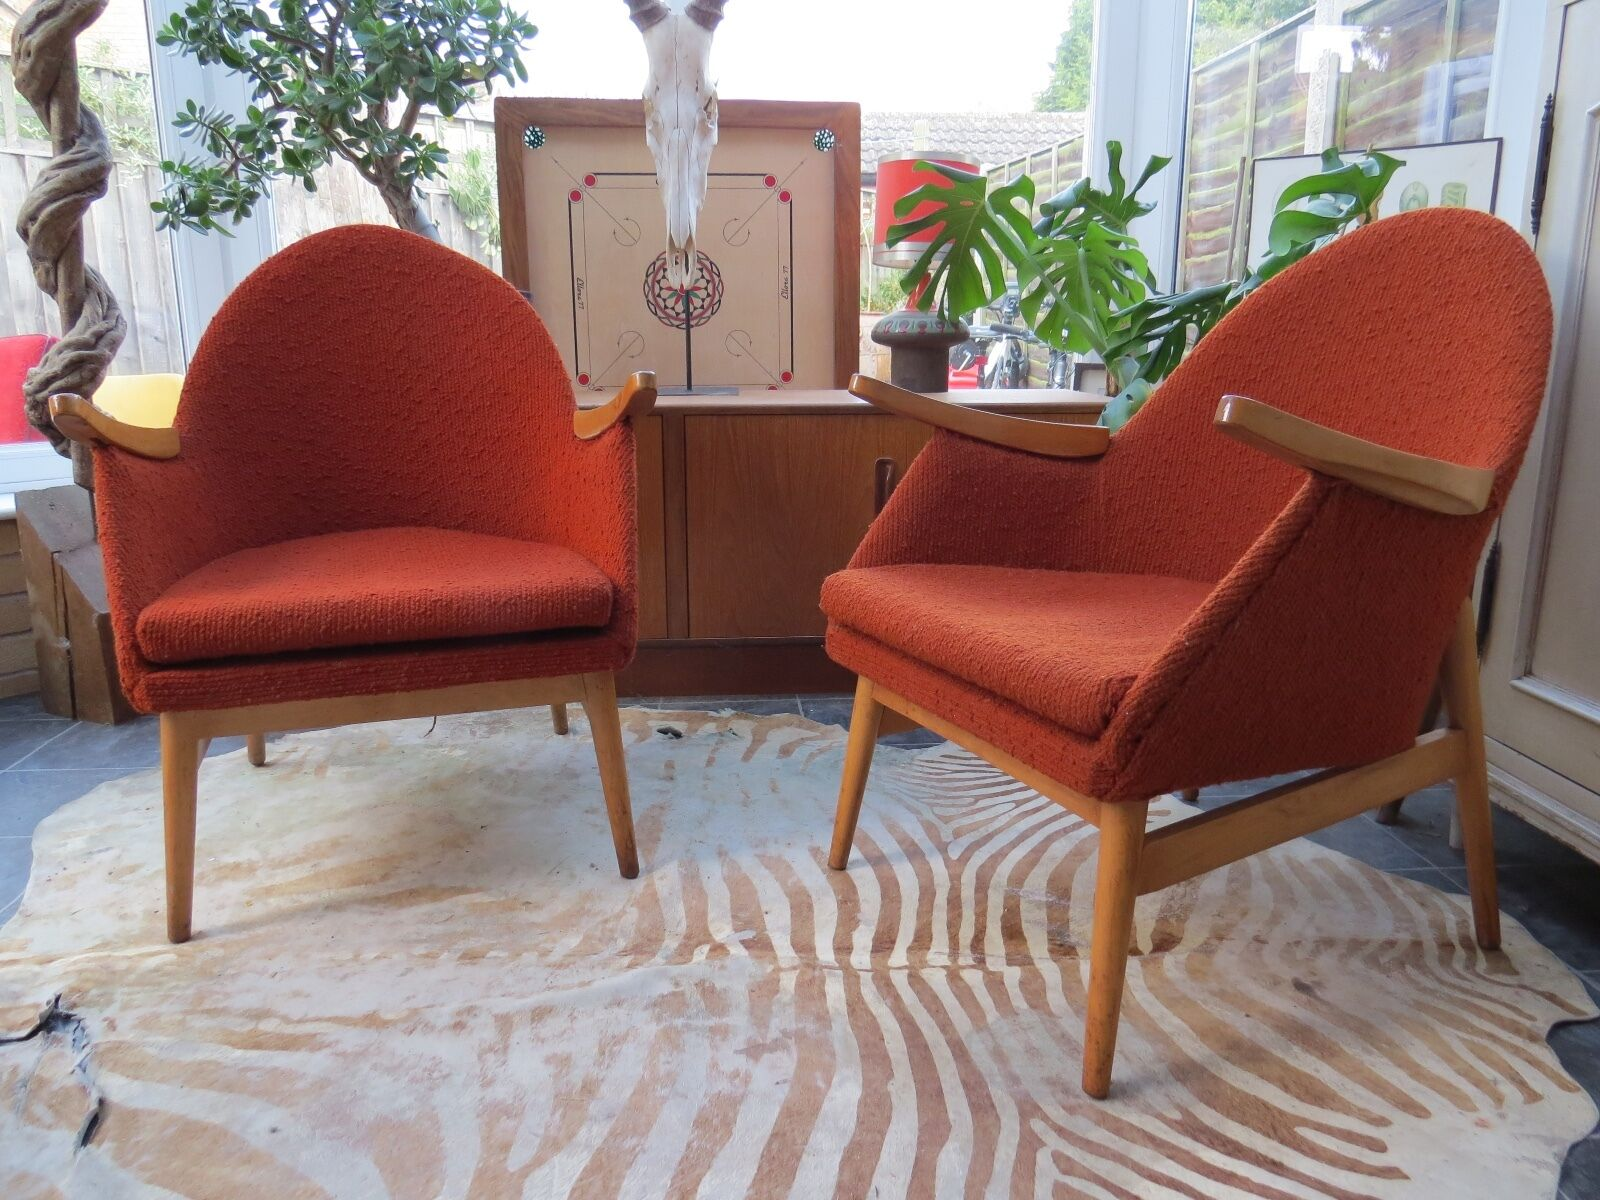 A Pair Of Vintage East German Cocktail Lounge Armchairs Circa 1965 Oc16-28A